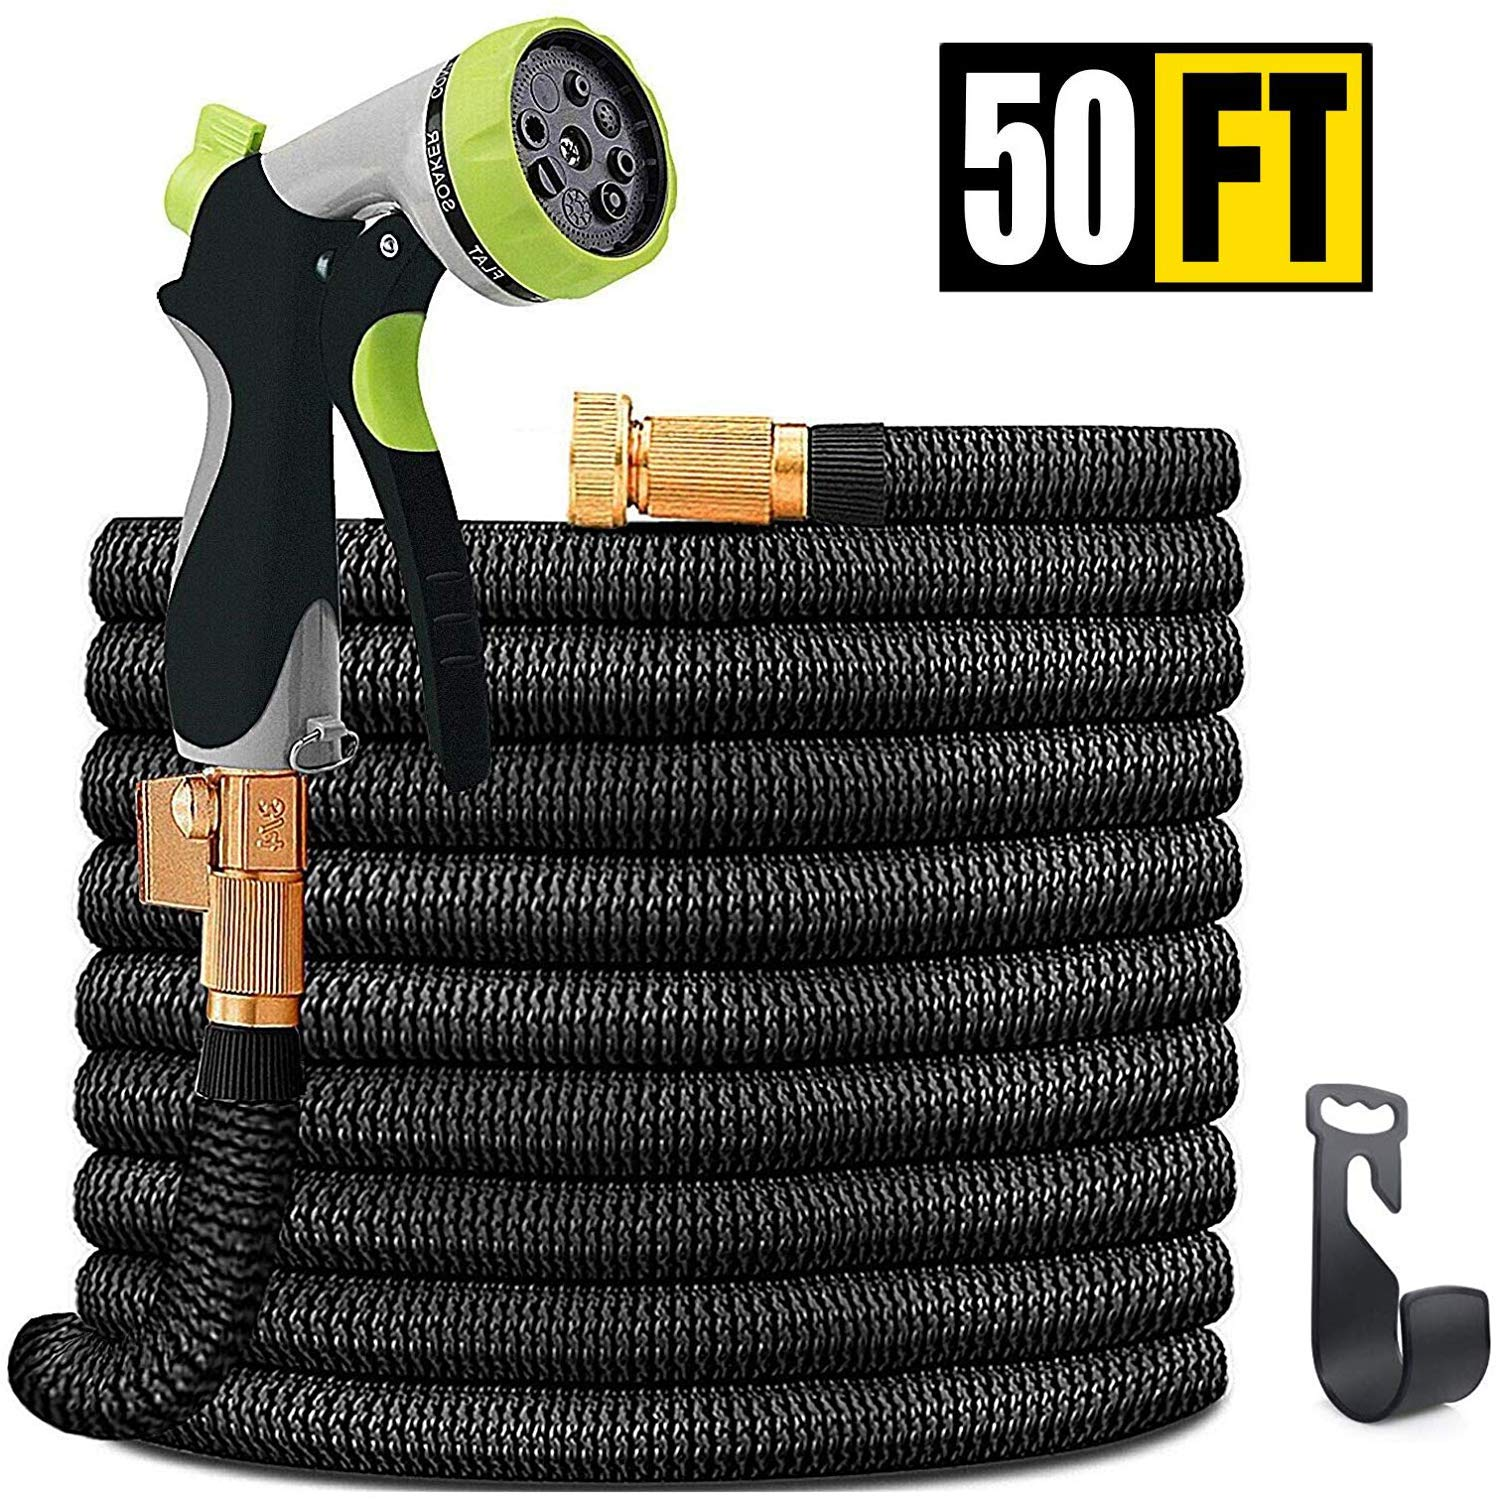 INNOLI Water Hose 50ft for Garden Lightweight Expandable Flexible Durable Water Hose with Spray Nozzle and 3/4 Nozzle Solid Brass Connector (50)